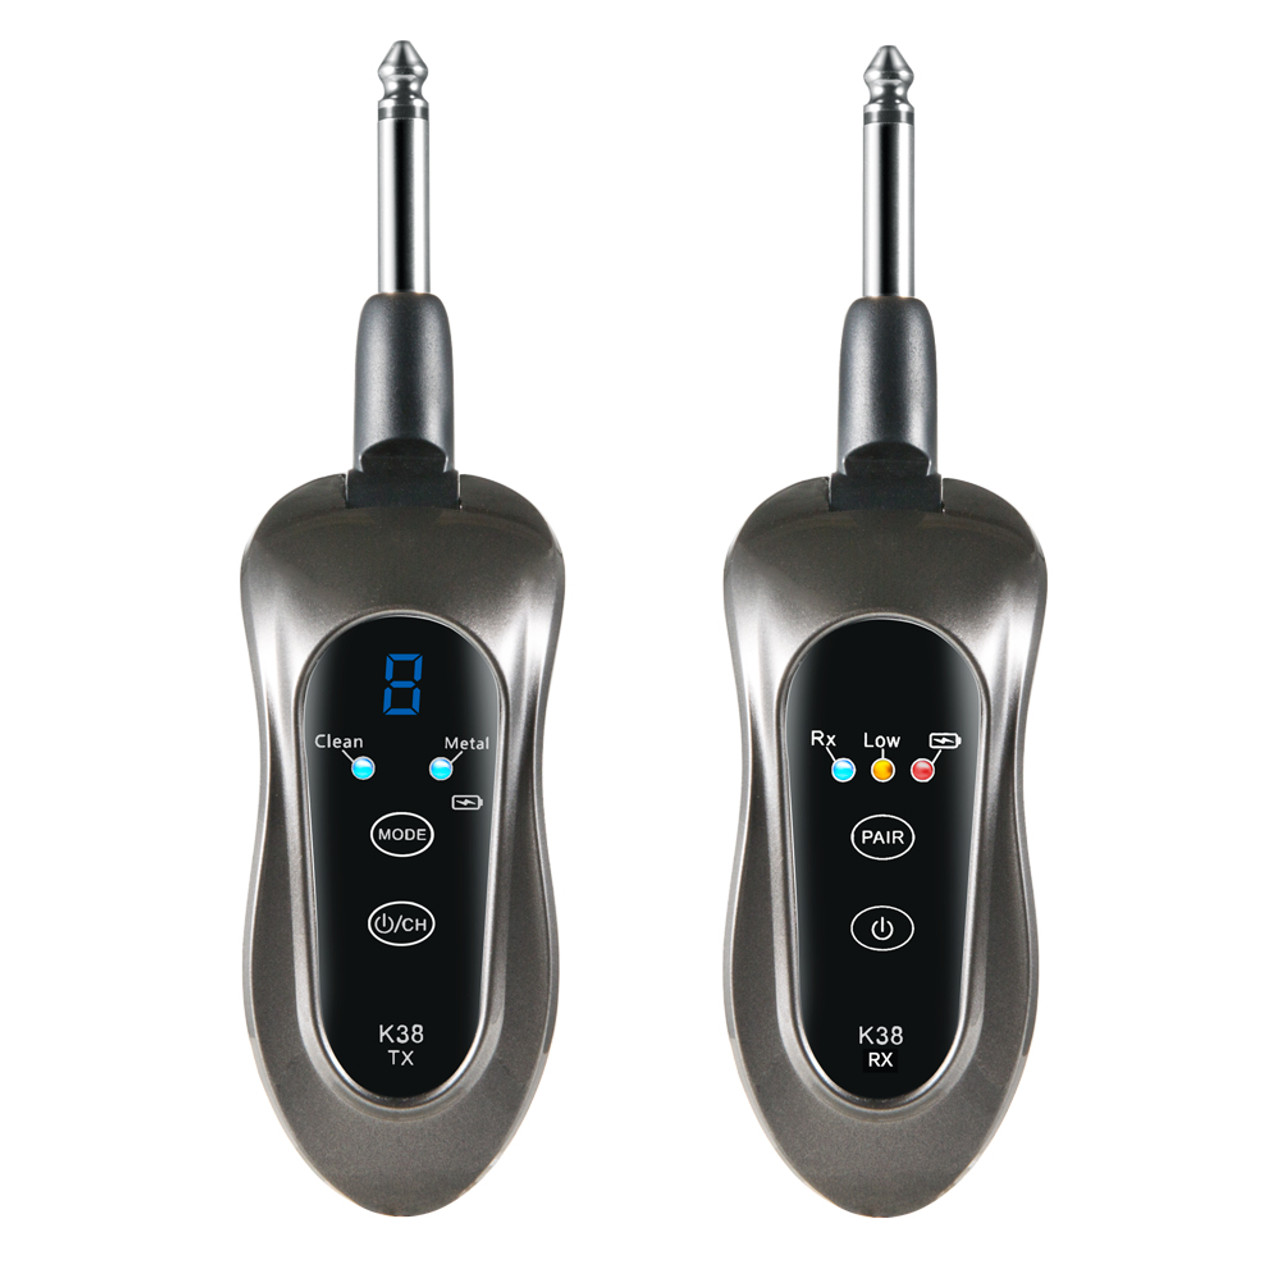 GitaFish Wireless Guitar System comes with 2 sound effects-Digital Guitar  Transmitter Receiver K38